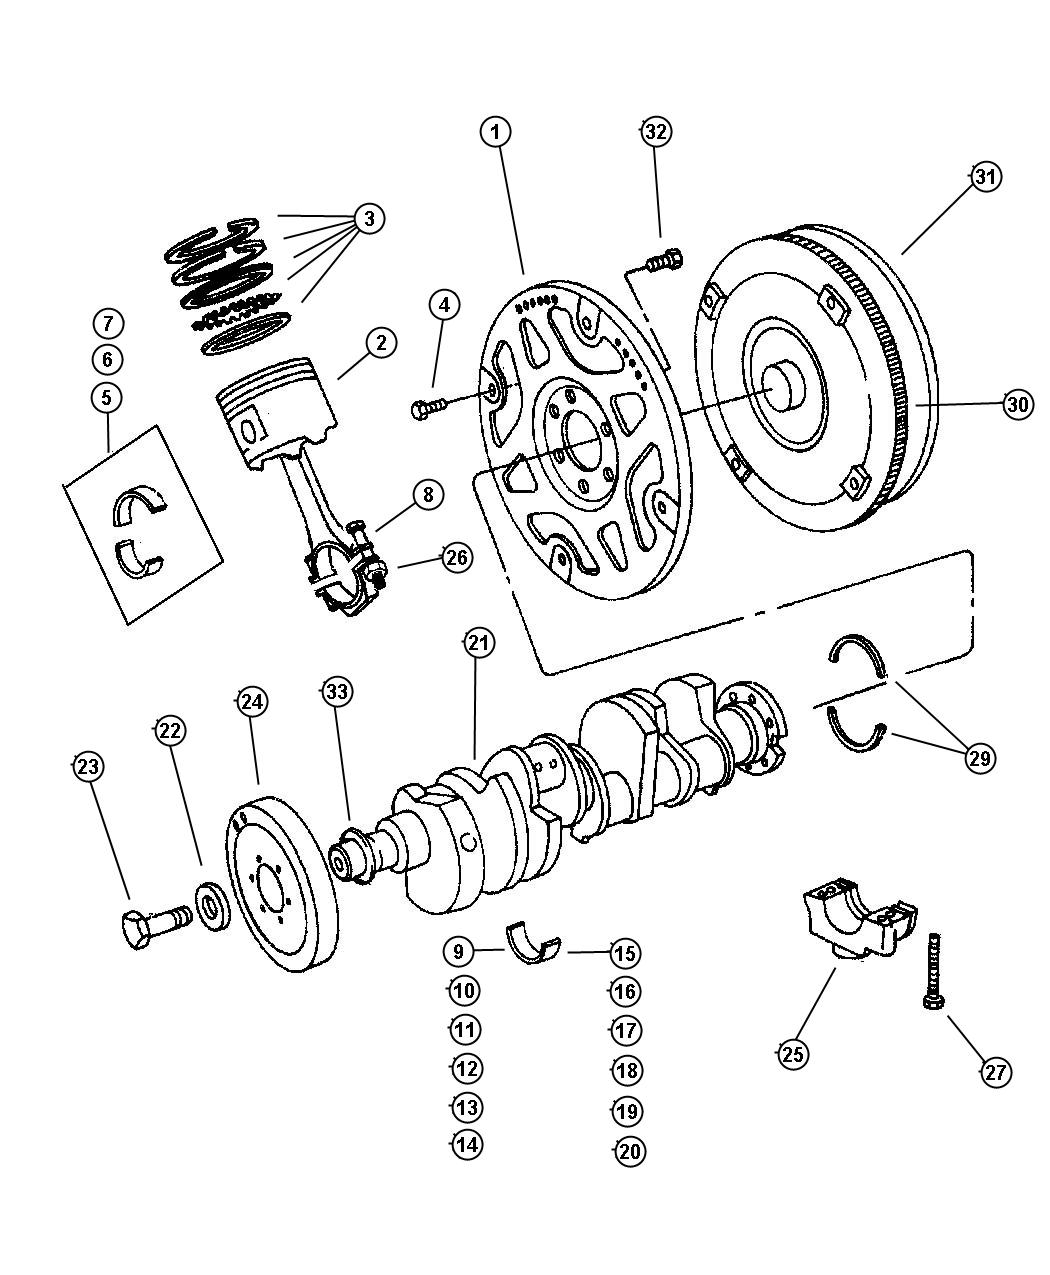 Service Manual Jeep Grand Cherokee Torque Converter